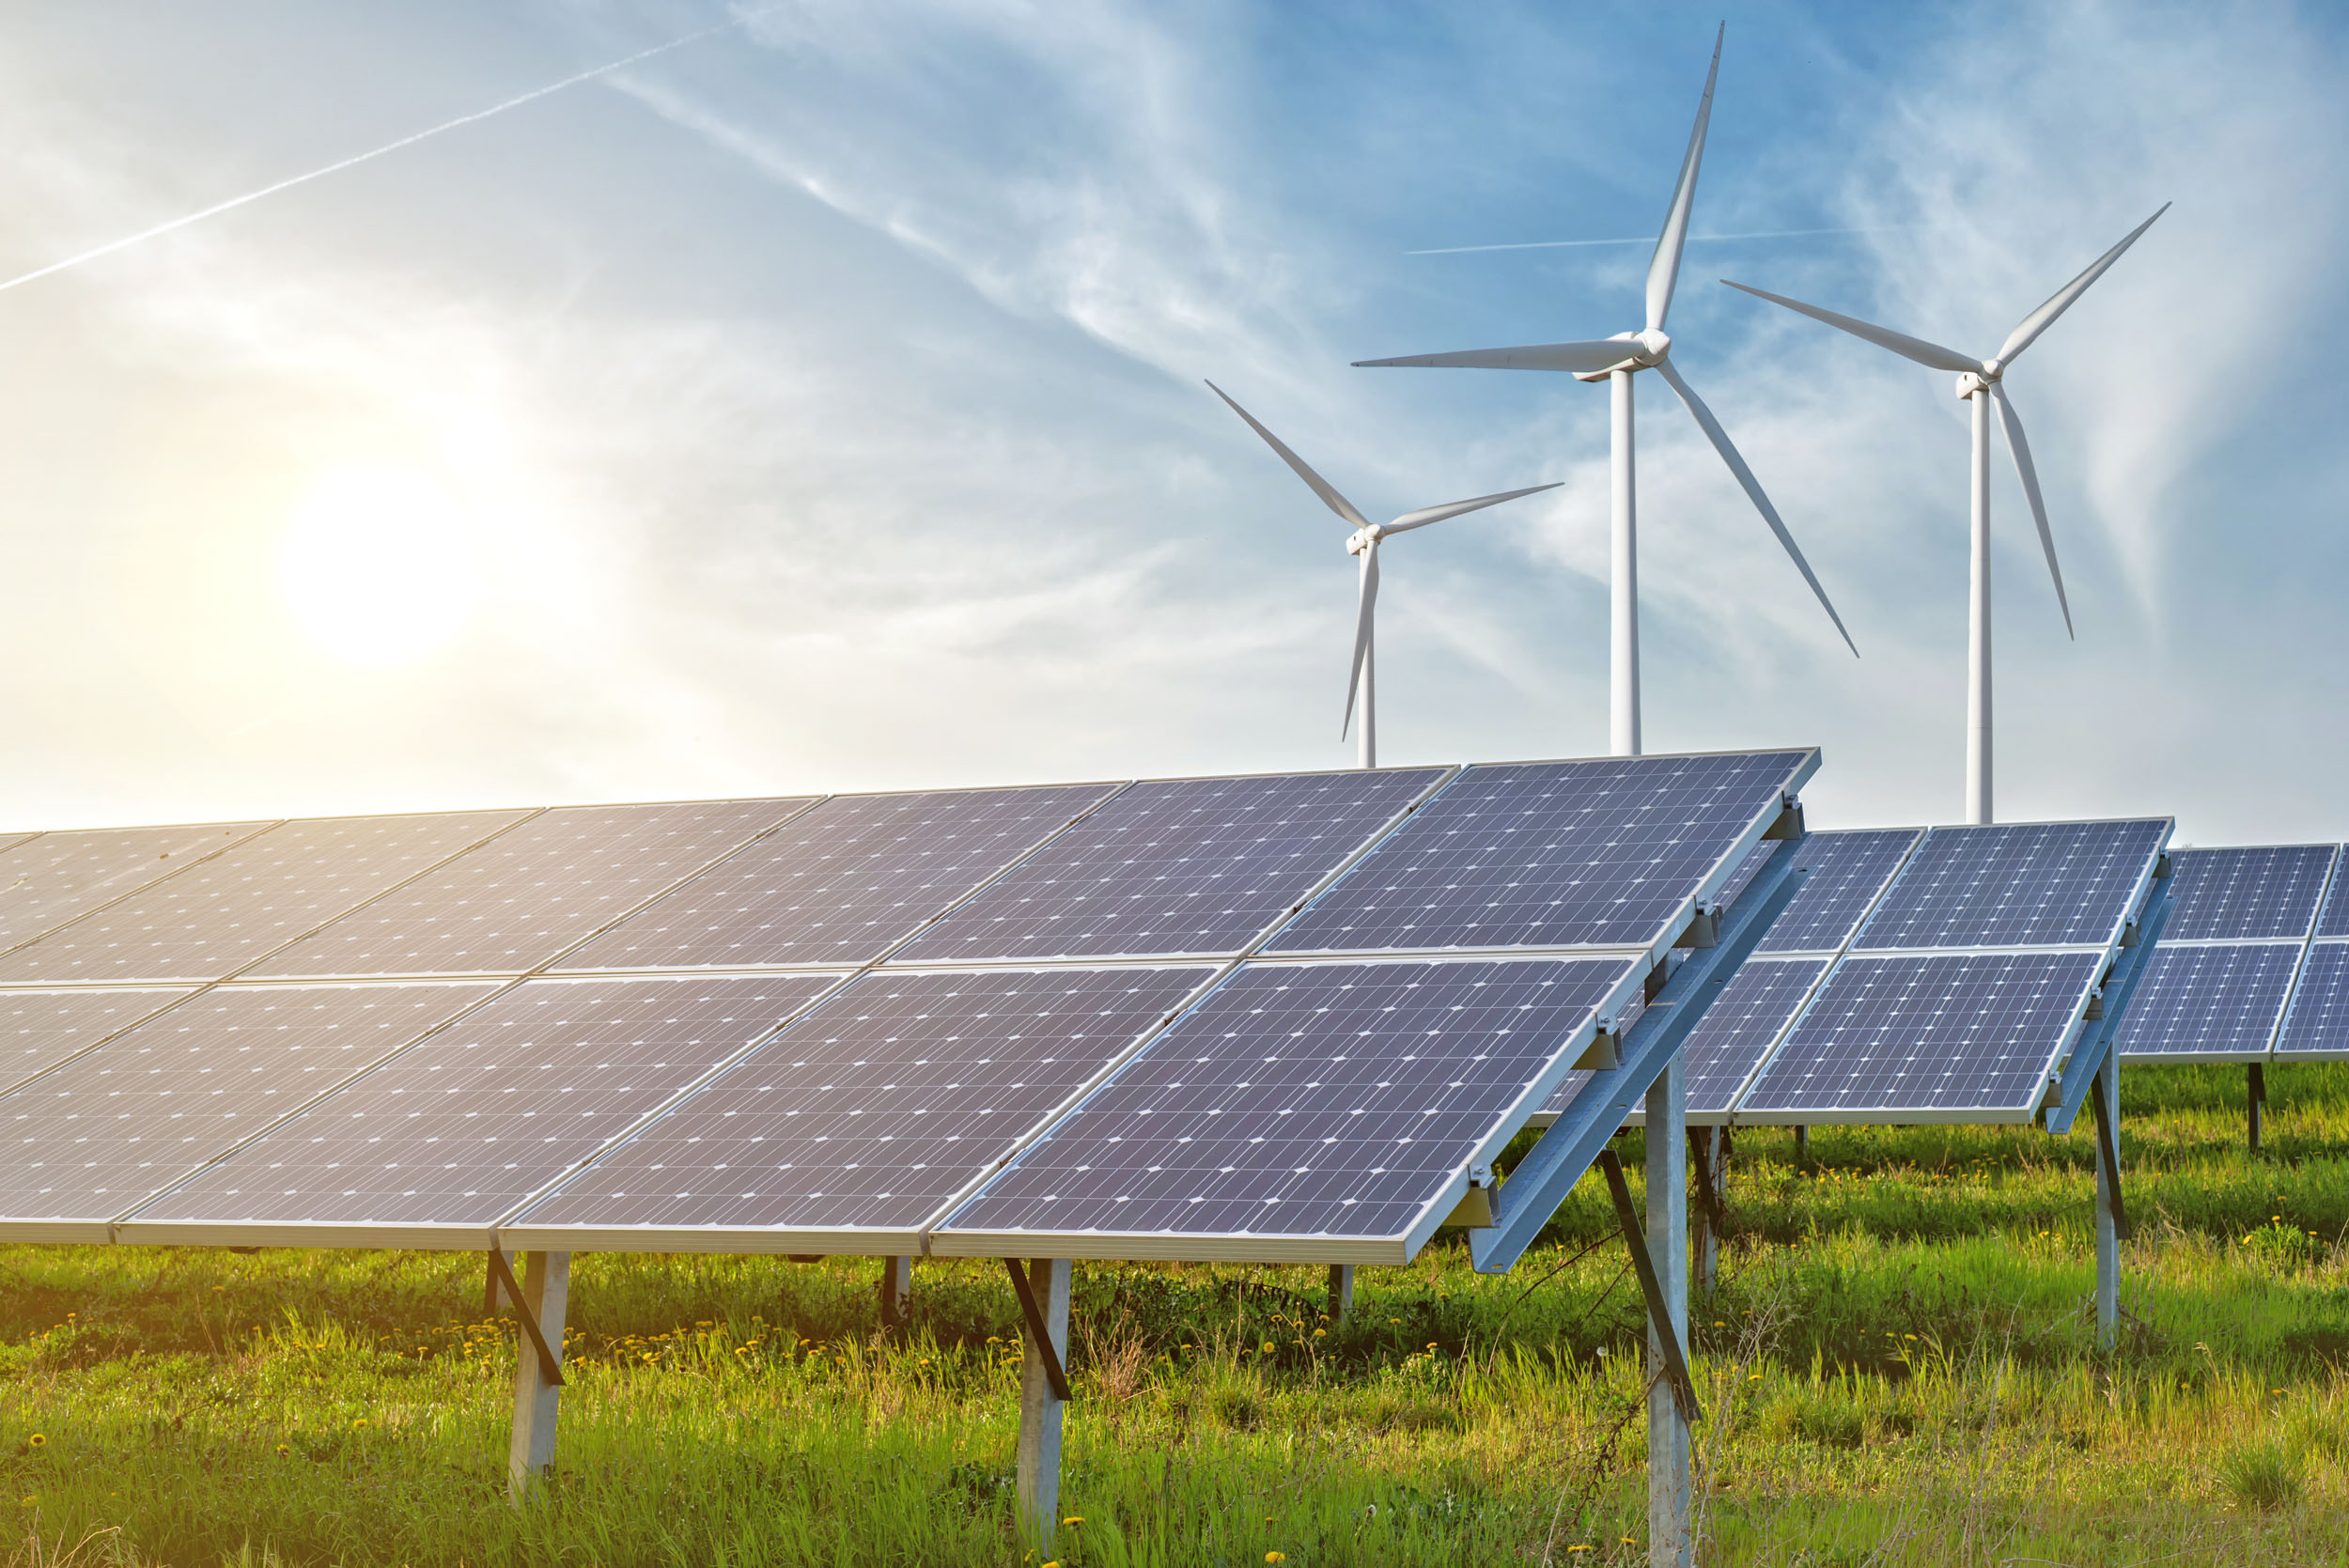 Green energy supporters stand strong in the face of Trump's future